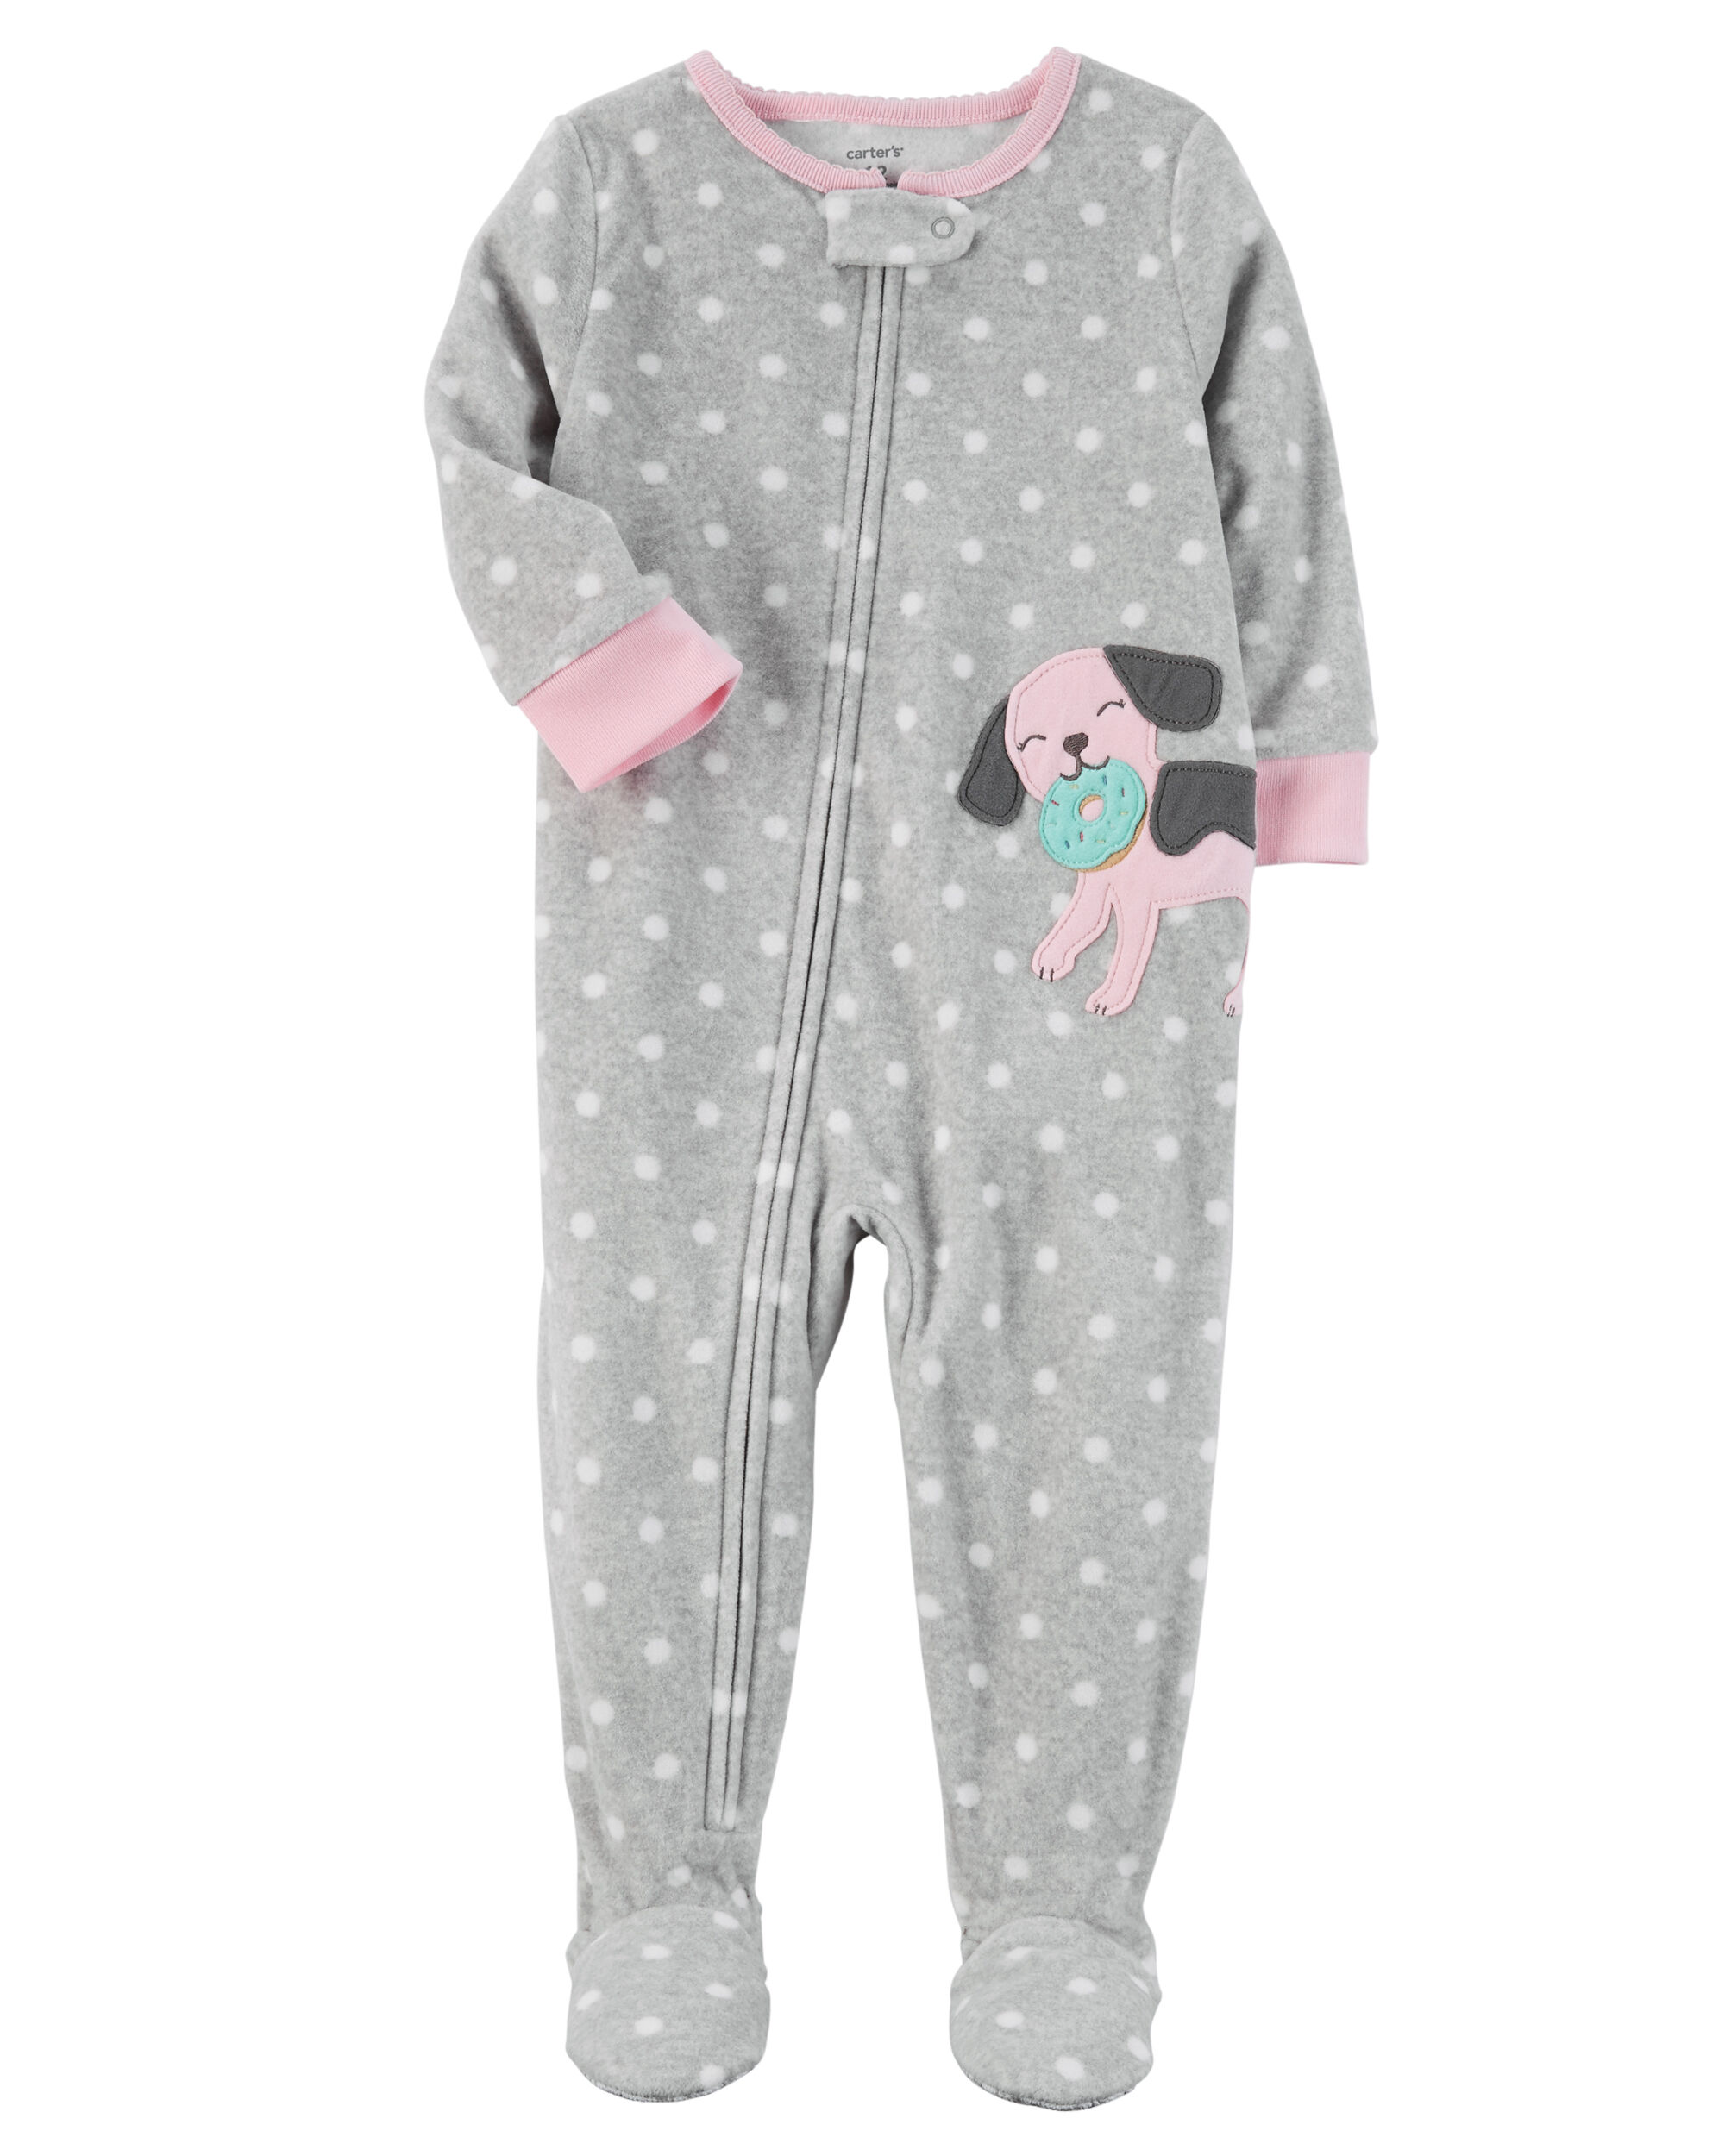 ea70b978c5 Images. 1-Piece Dog Fleece PJs